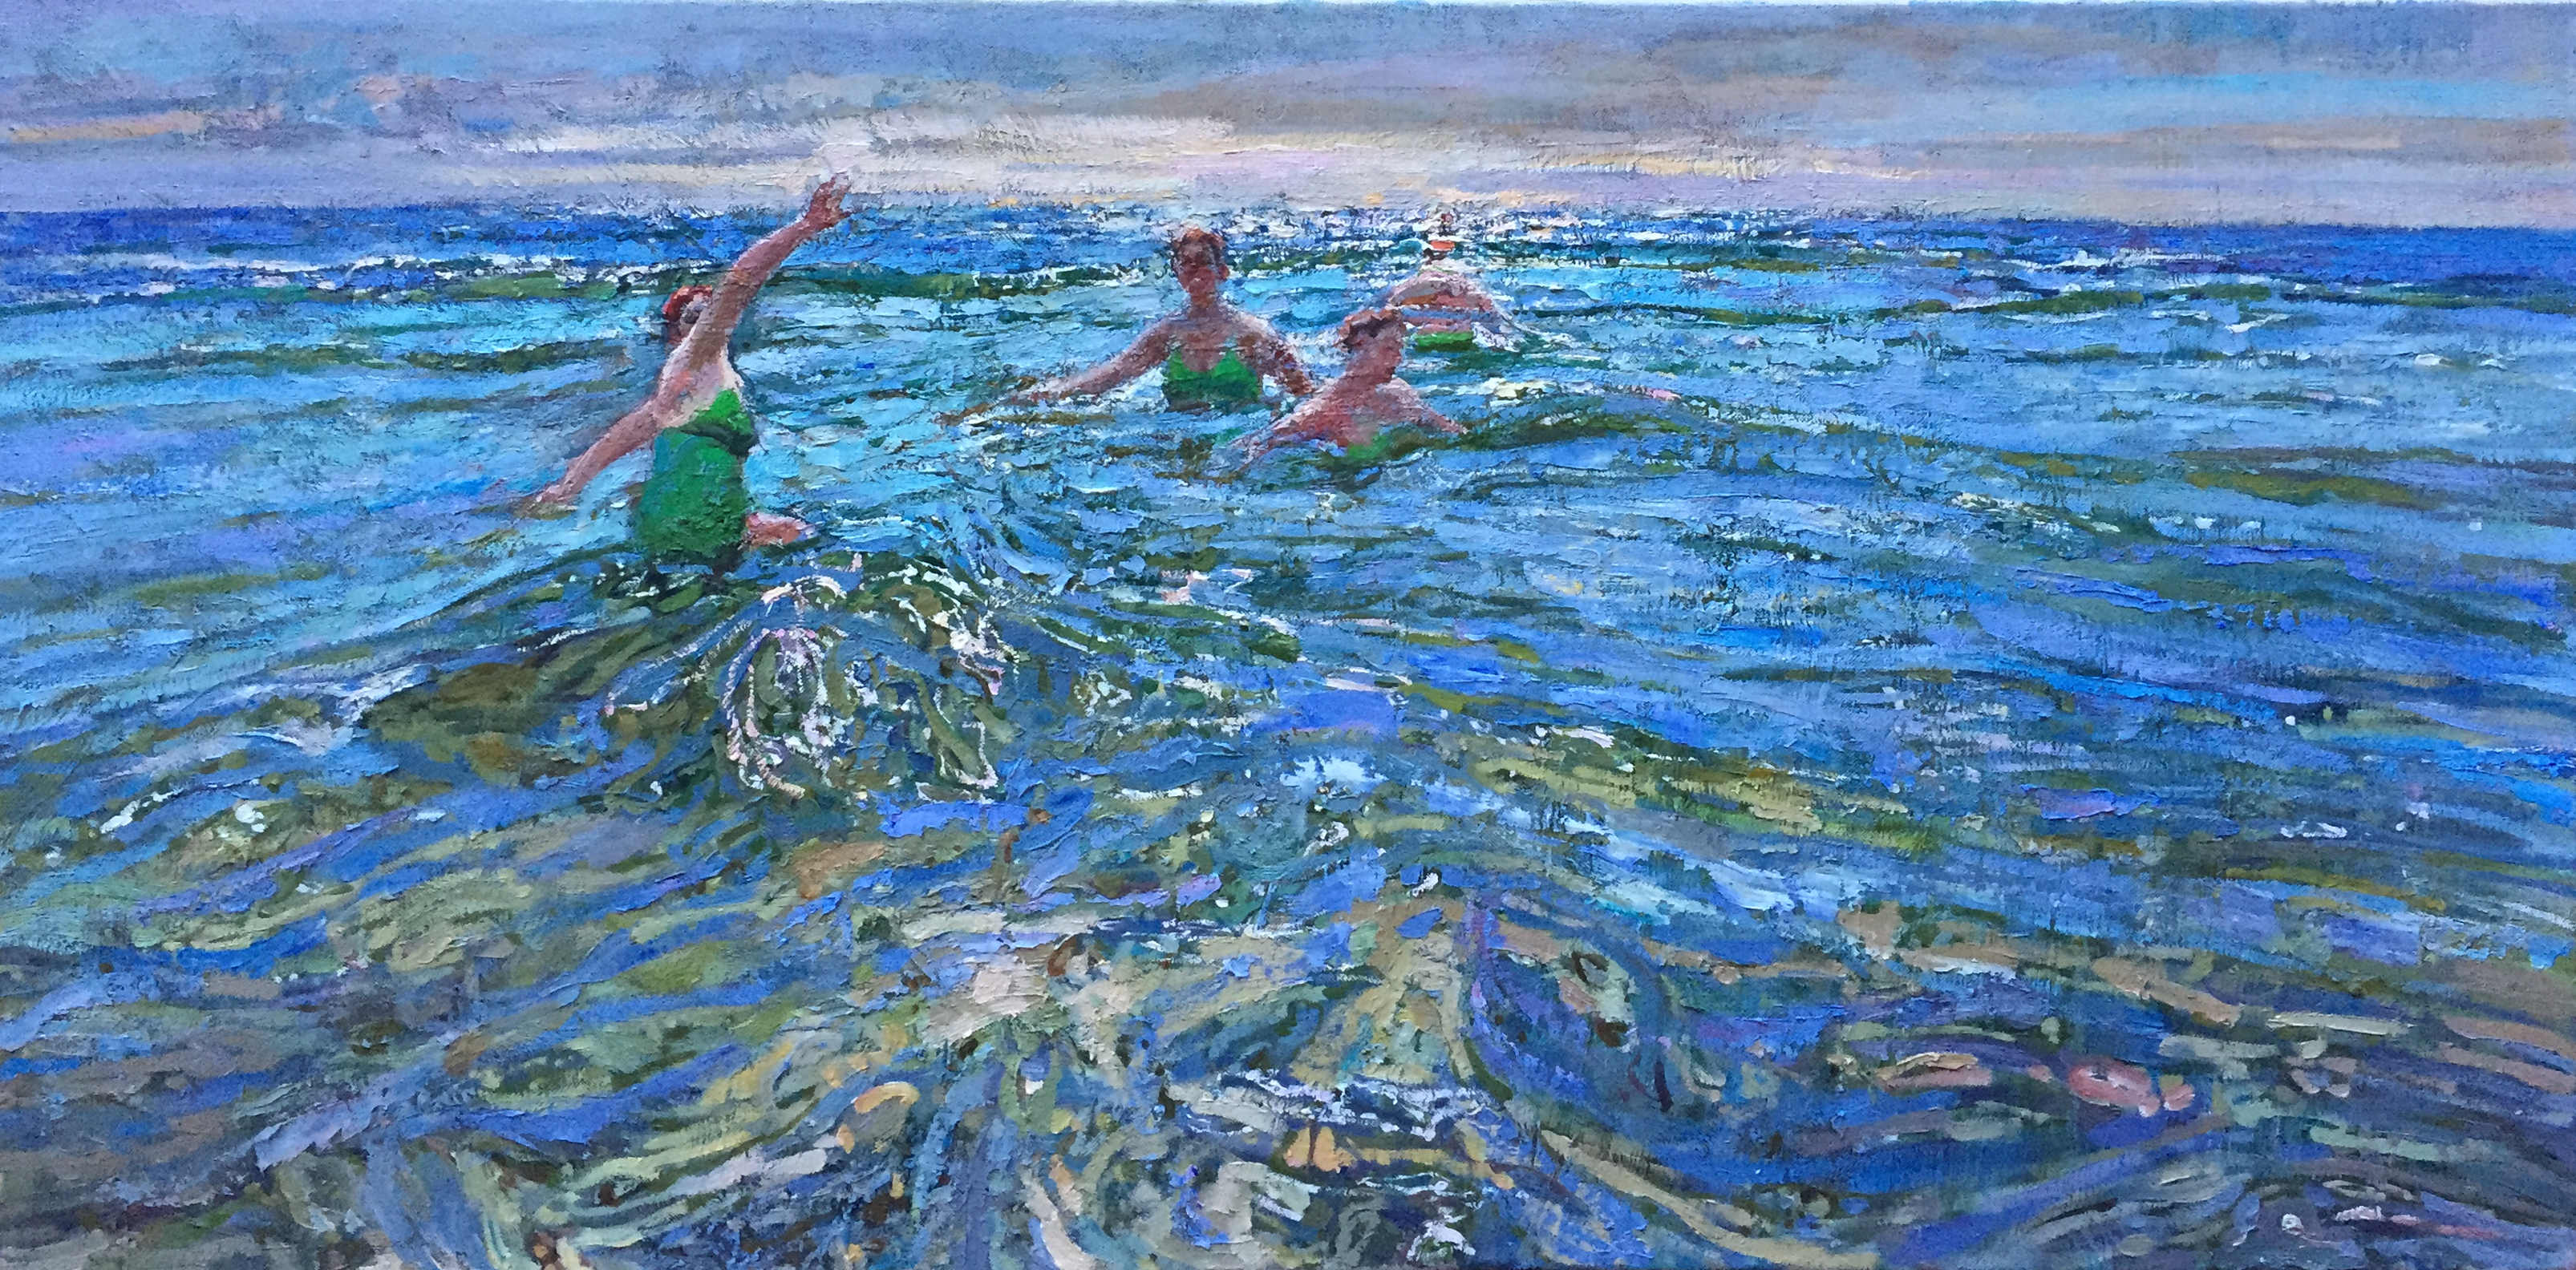 The Swimmer, Variation by  Daud Akhriev - Masterpiece Online